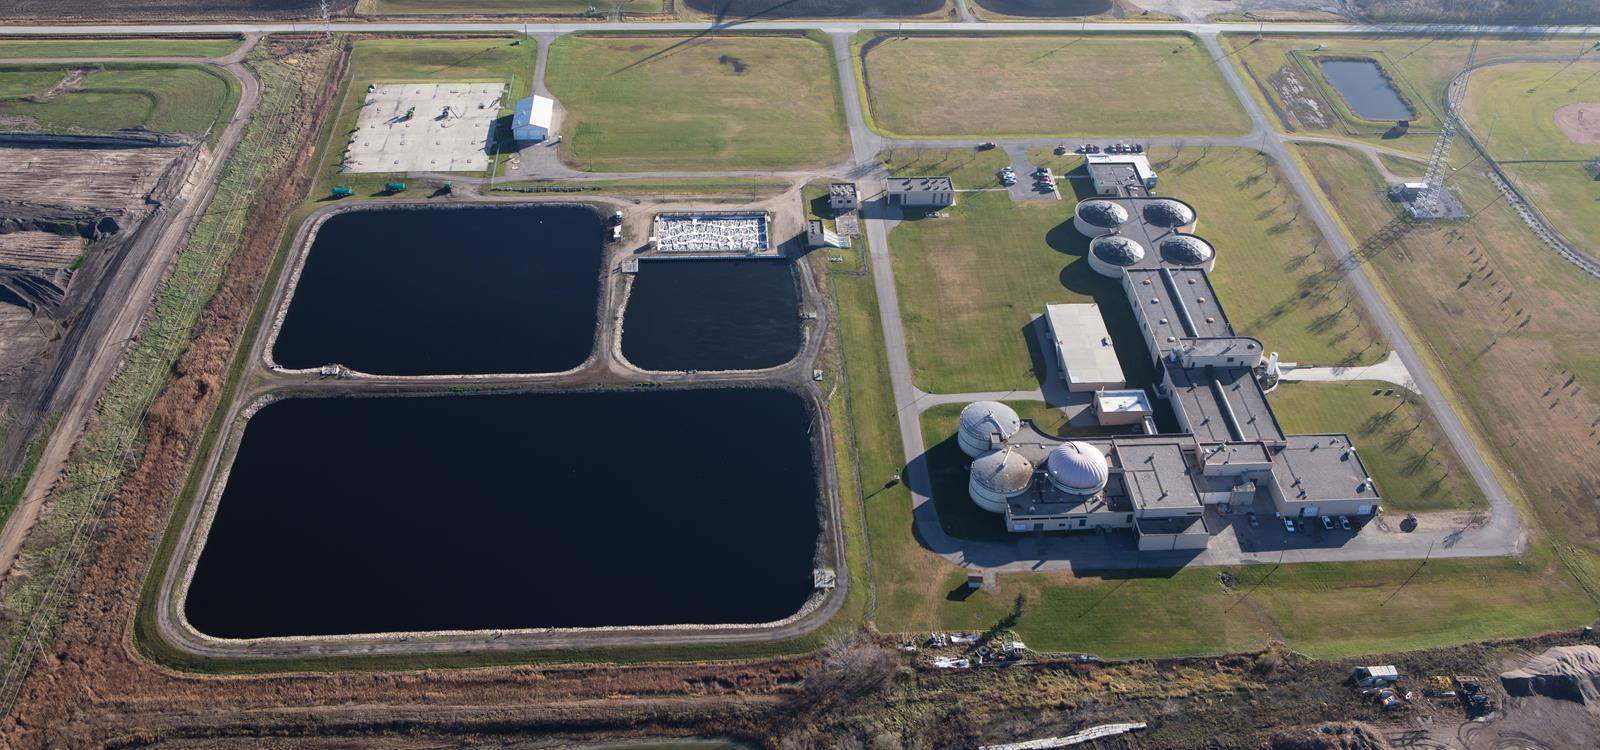 Moorhead's Wastewater Treatment Facility Aerial